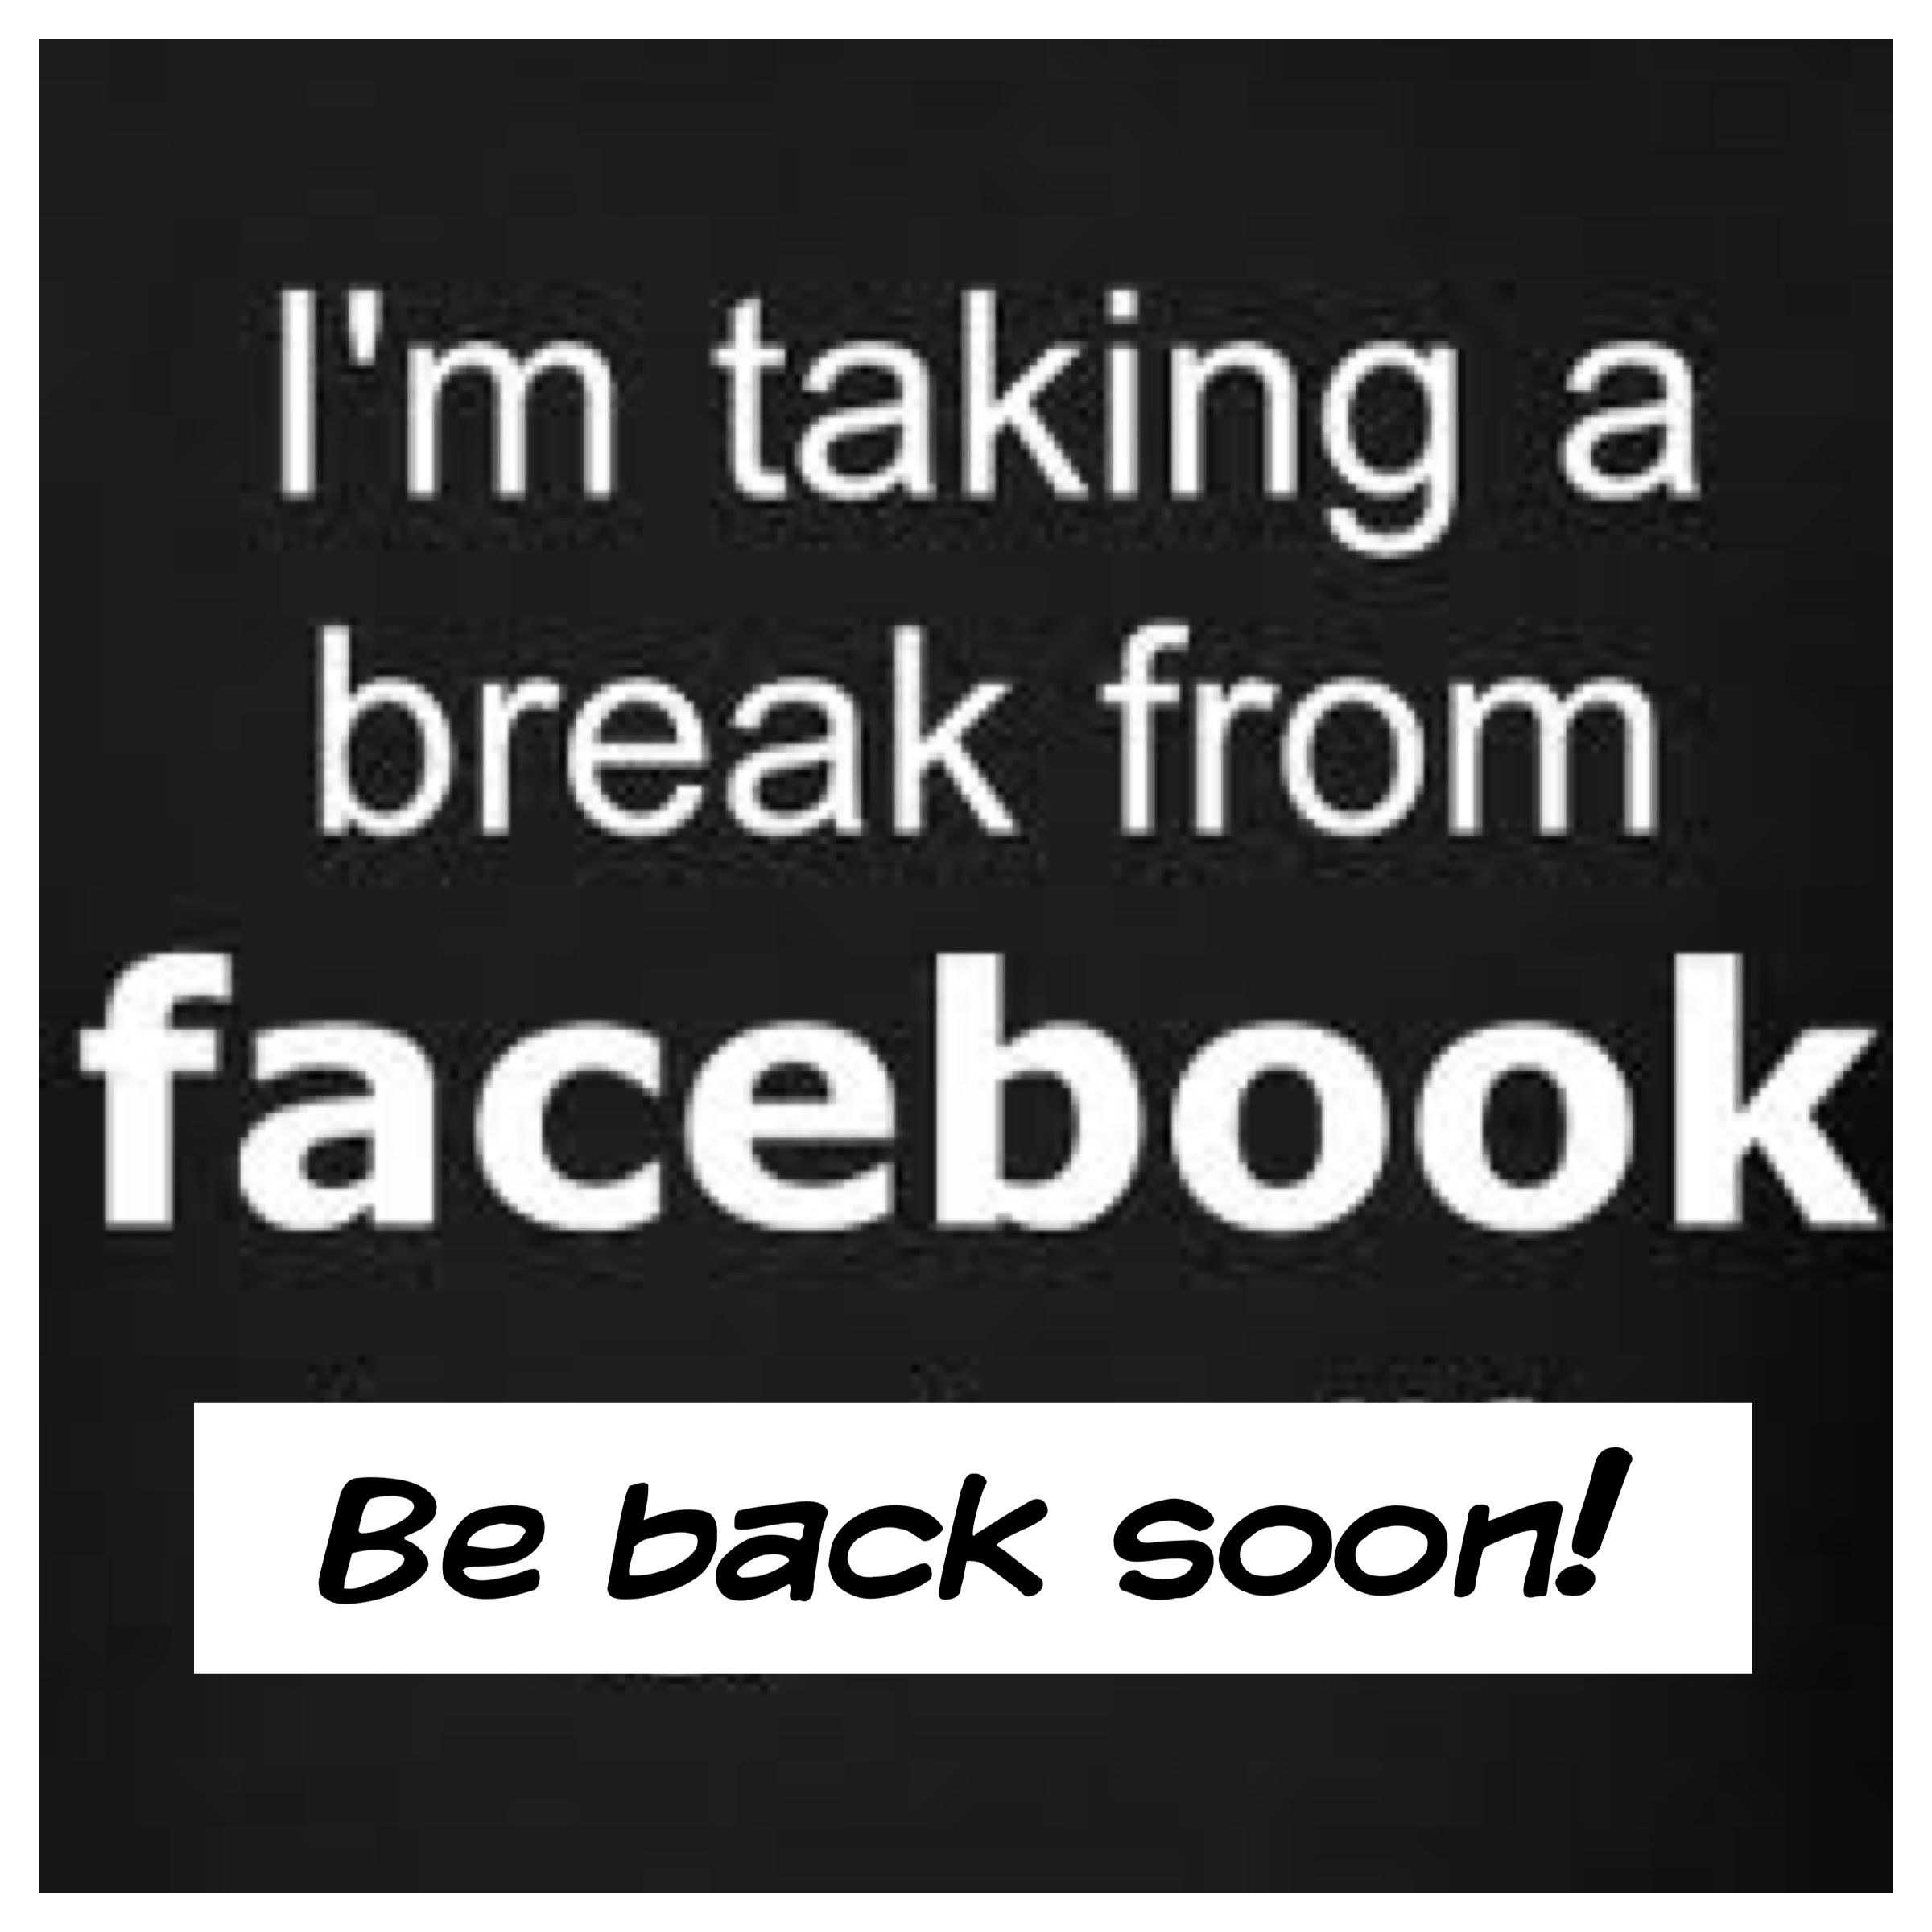 Funny facebook quotes status updates profile pics - Once A Year Go On A 30 Day Facebook Fast Make This Your Profile Picture